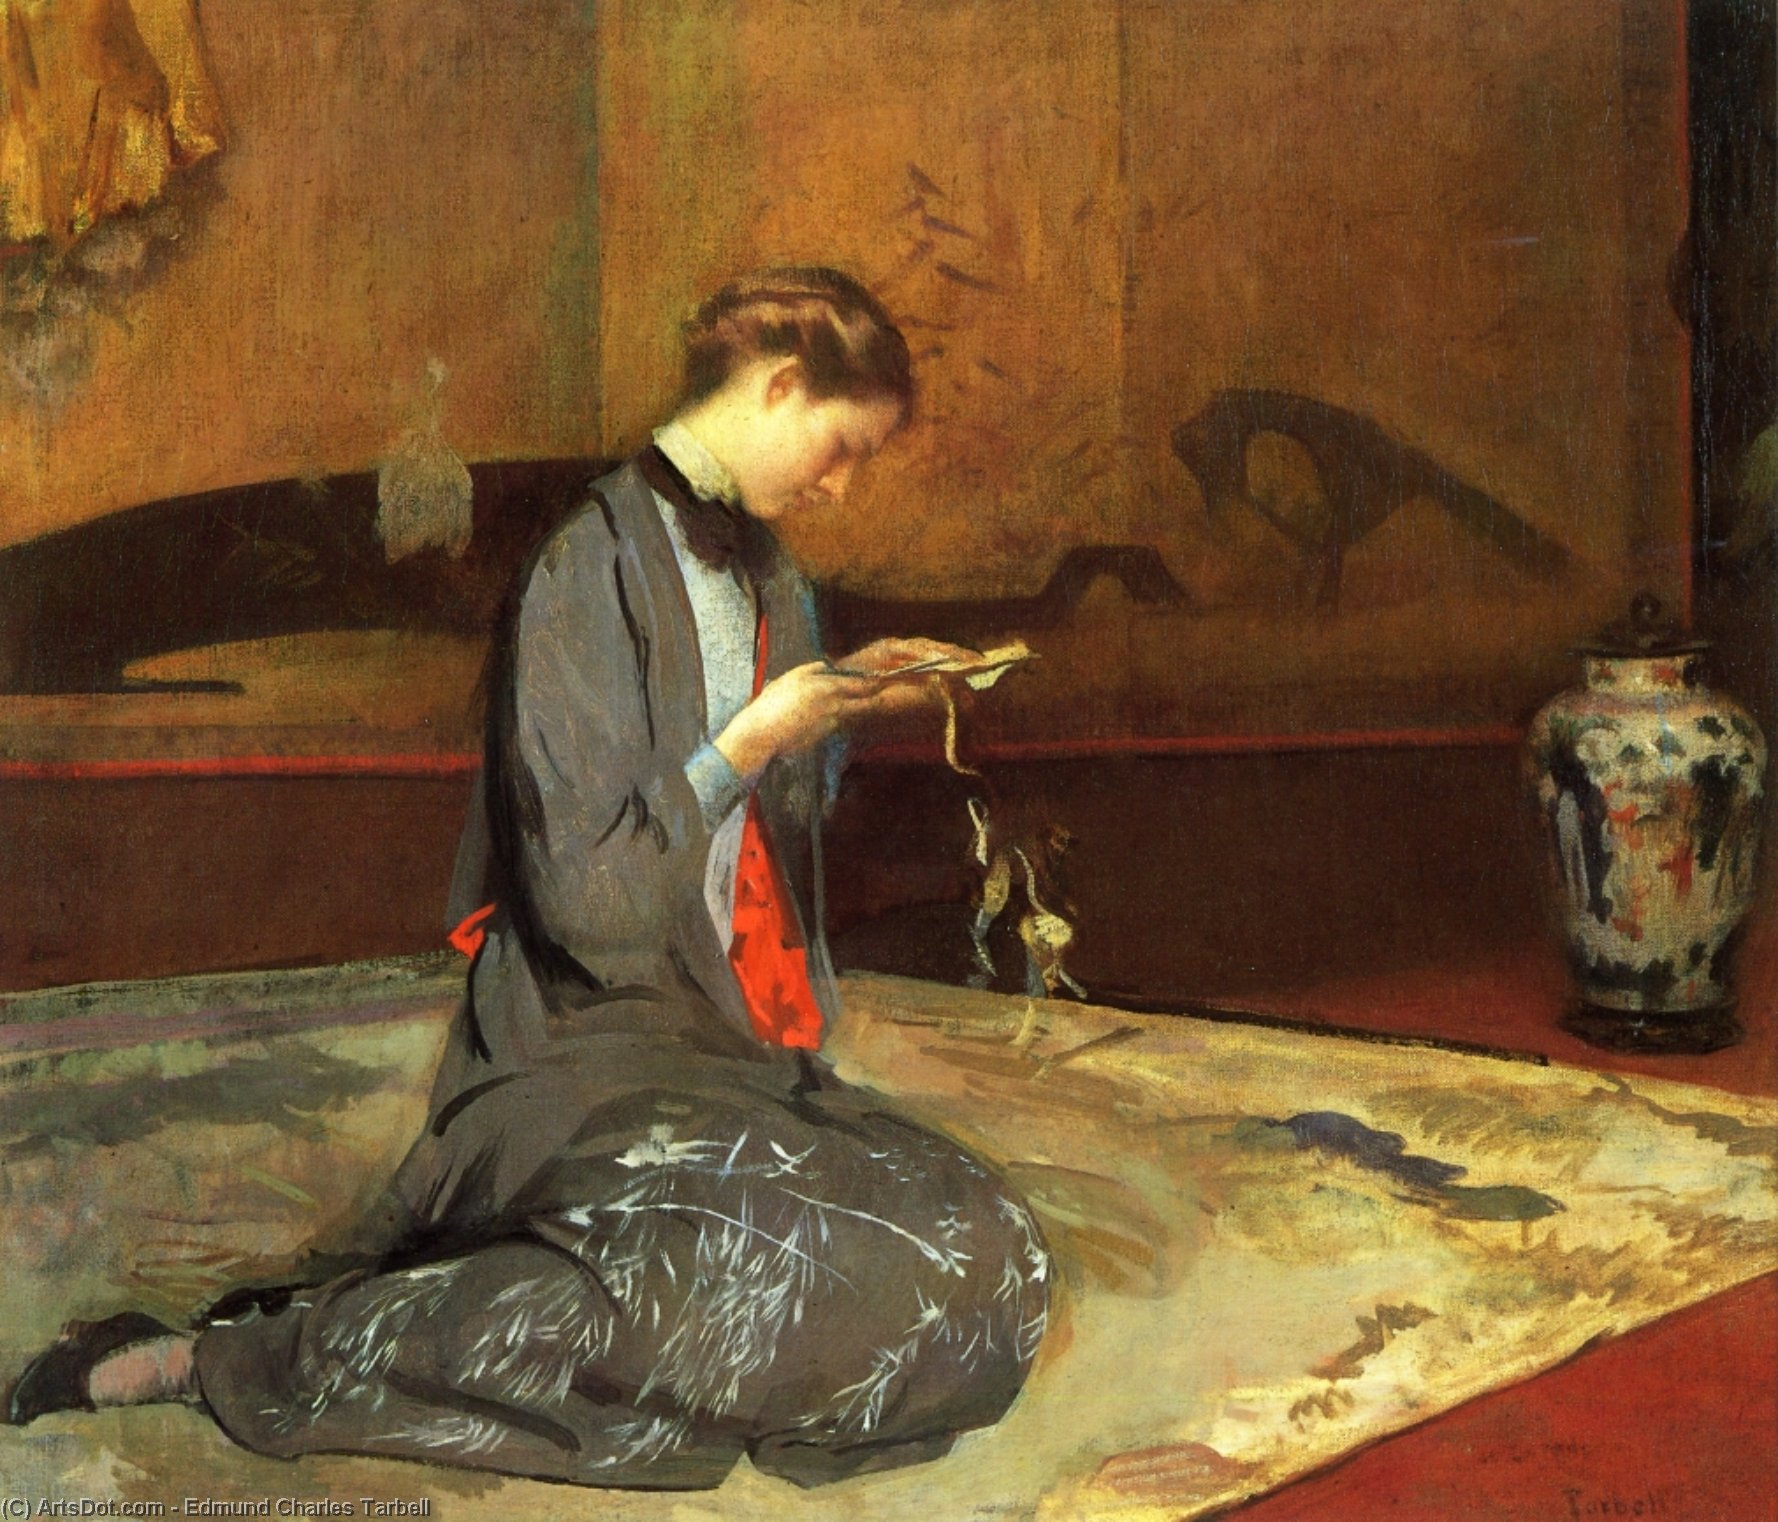 Cutting Origami, Oil On Canvas by Edmund Charles Tarbell (1862-1938, United States)